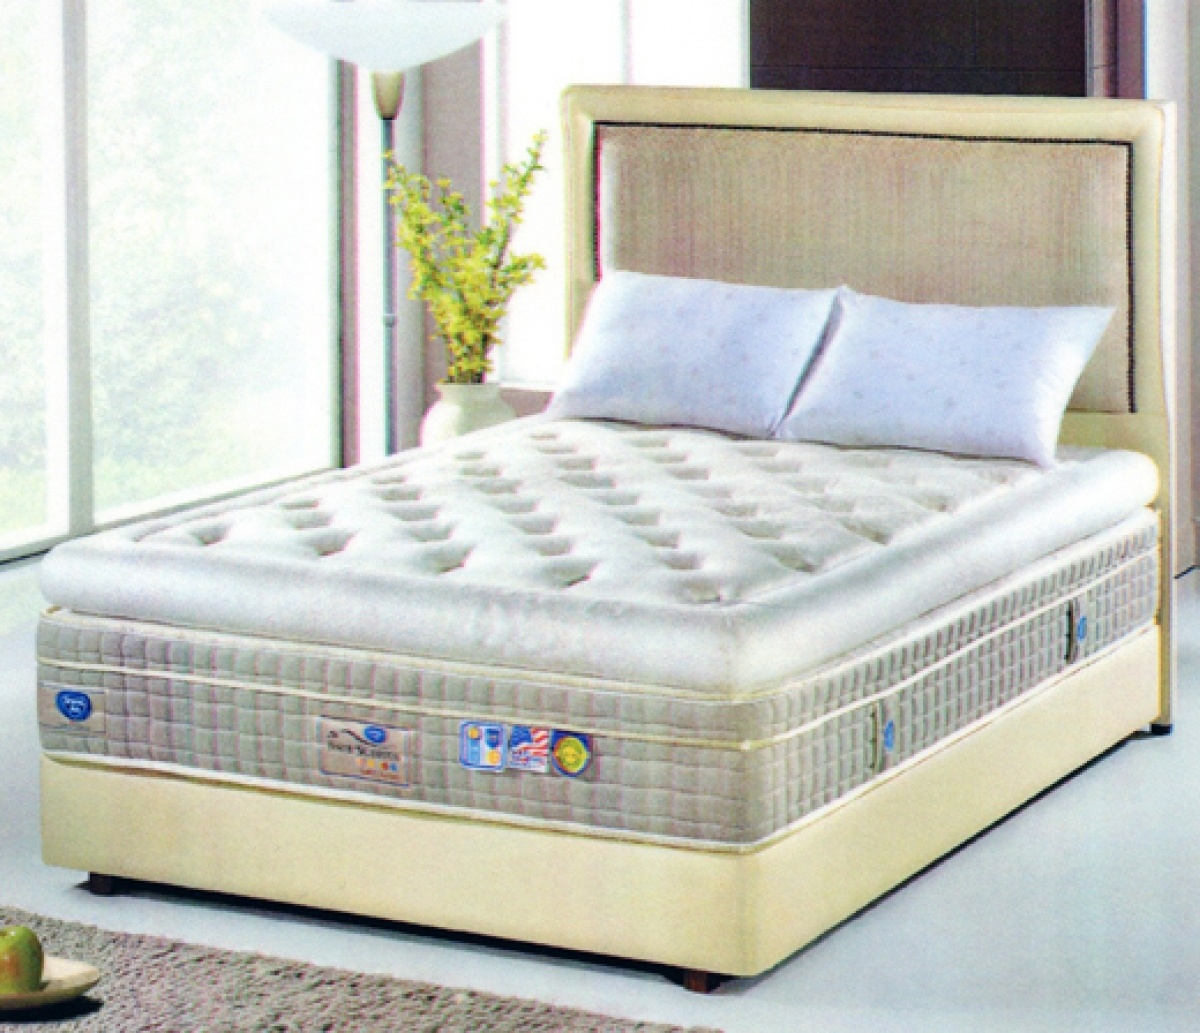 Home › Spring Air Four Seasons Latex Luxury Mattress. 1487424613_1514060_z